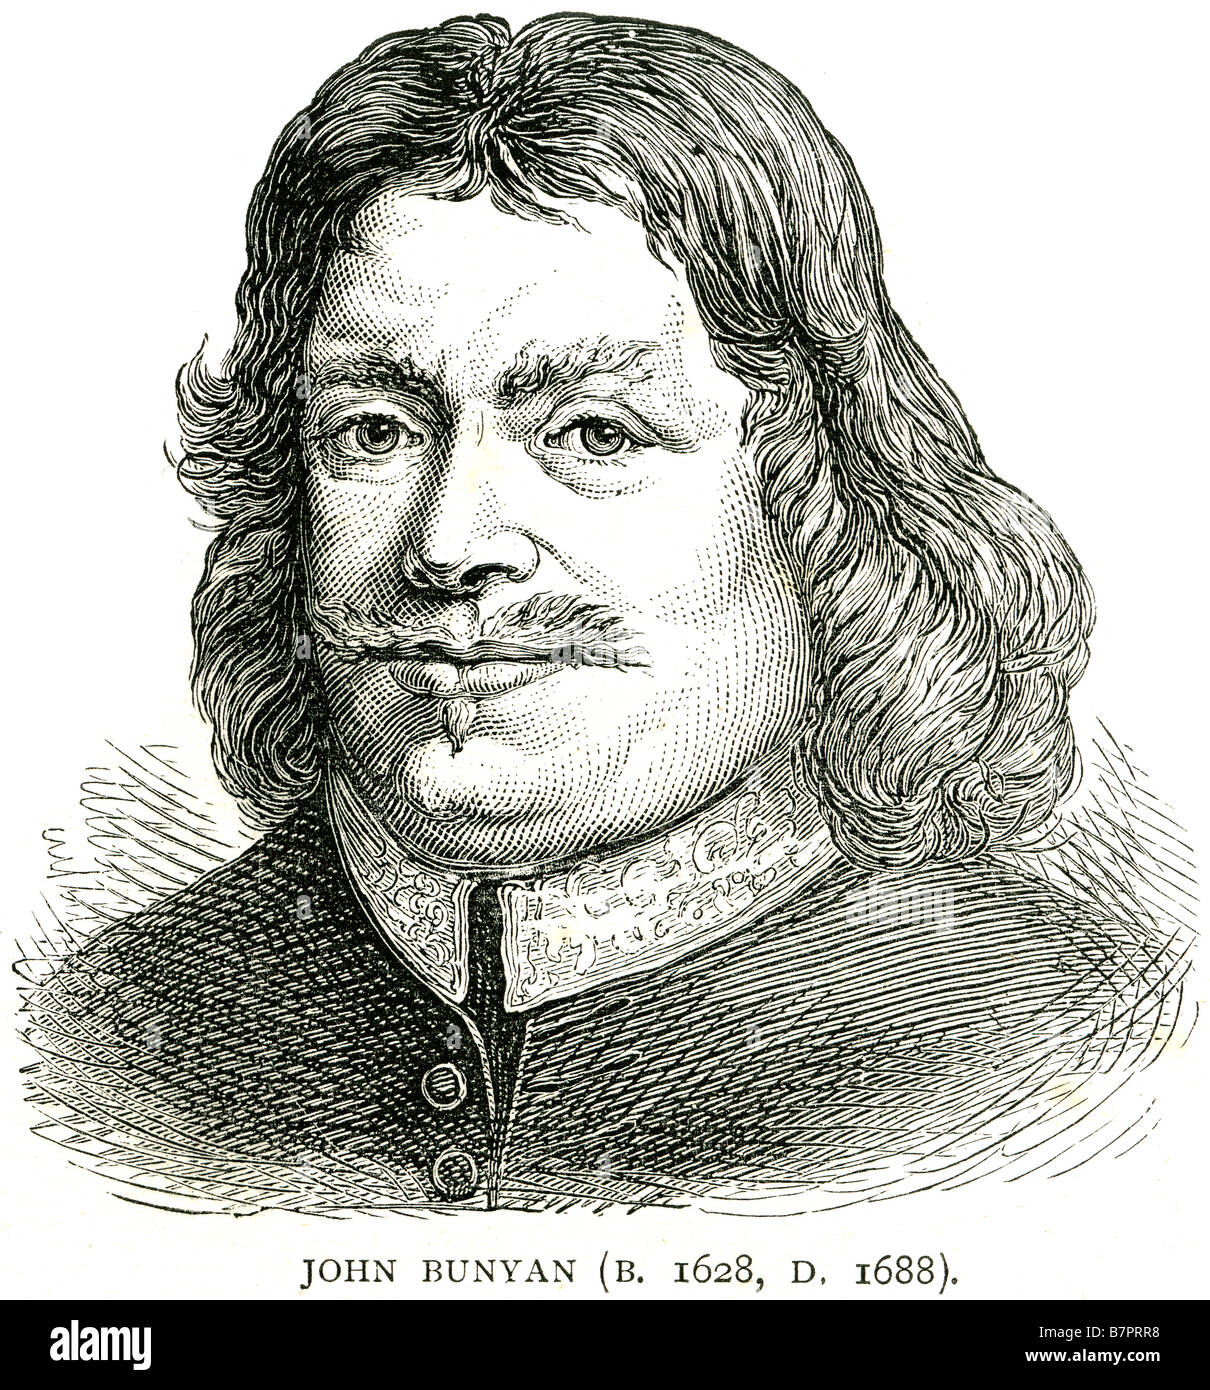 john bunyan english christian writer preacher pilgrim s  john bunyan 1628 1688 english christian writer preacher pilgrim s progress face portrait profile